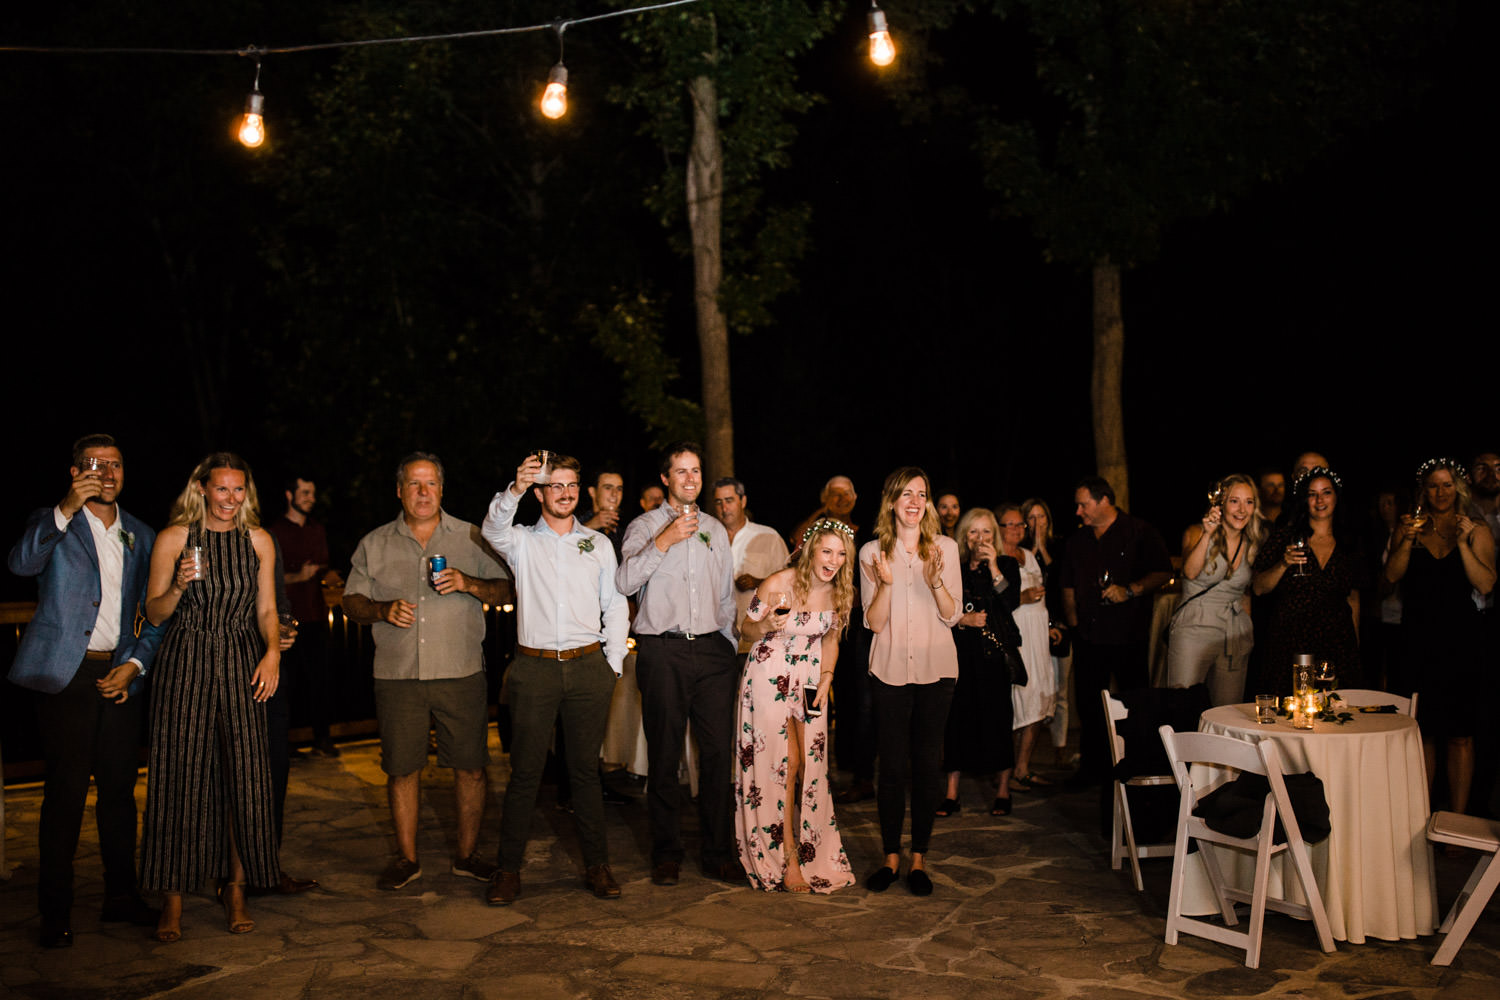 guests laugh during speeches at outdoor wedding reception